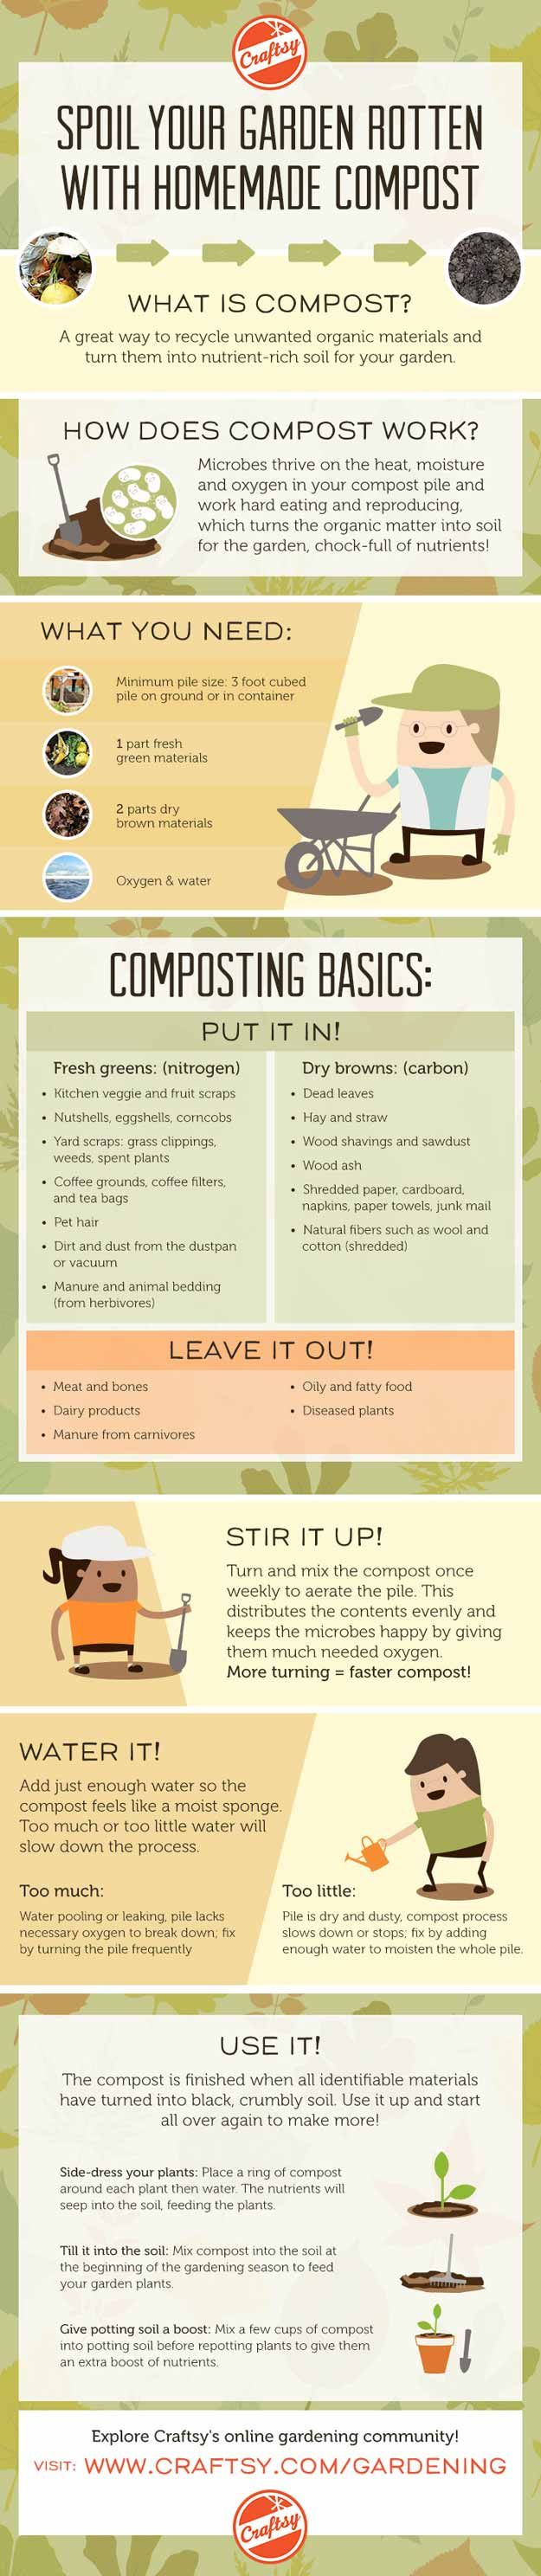 How To Compost (Infographic)   Homesteading Composting Guide, check it out at http://pioneersettler.com/how-to-compost/